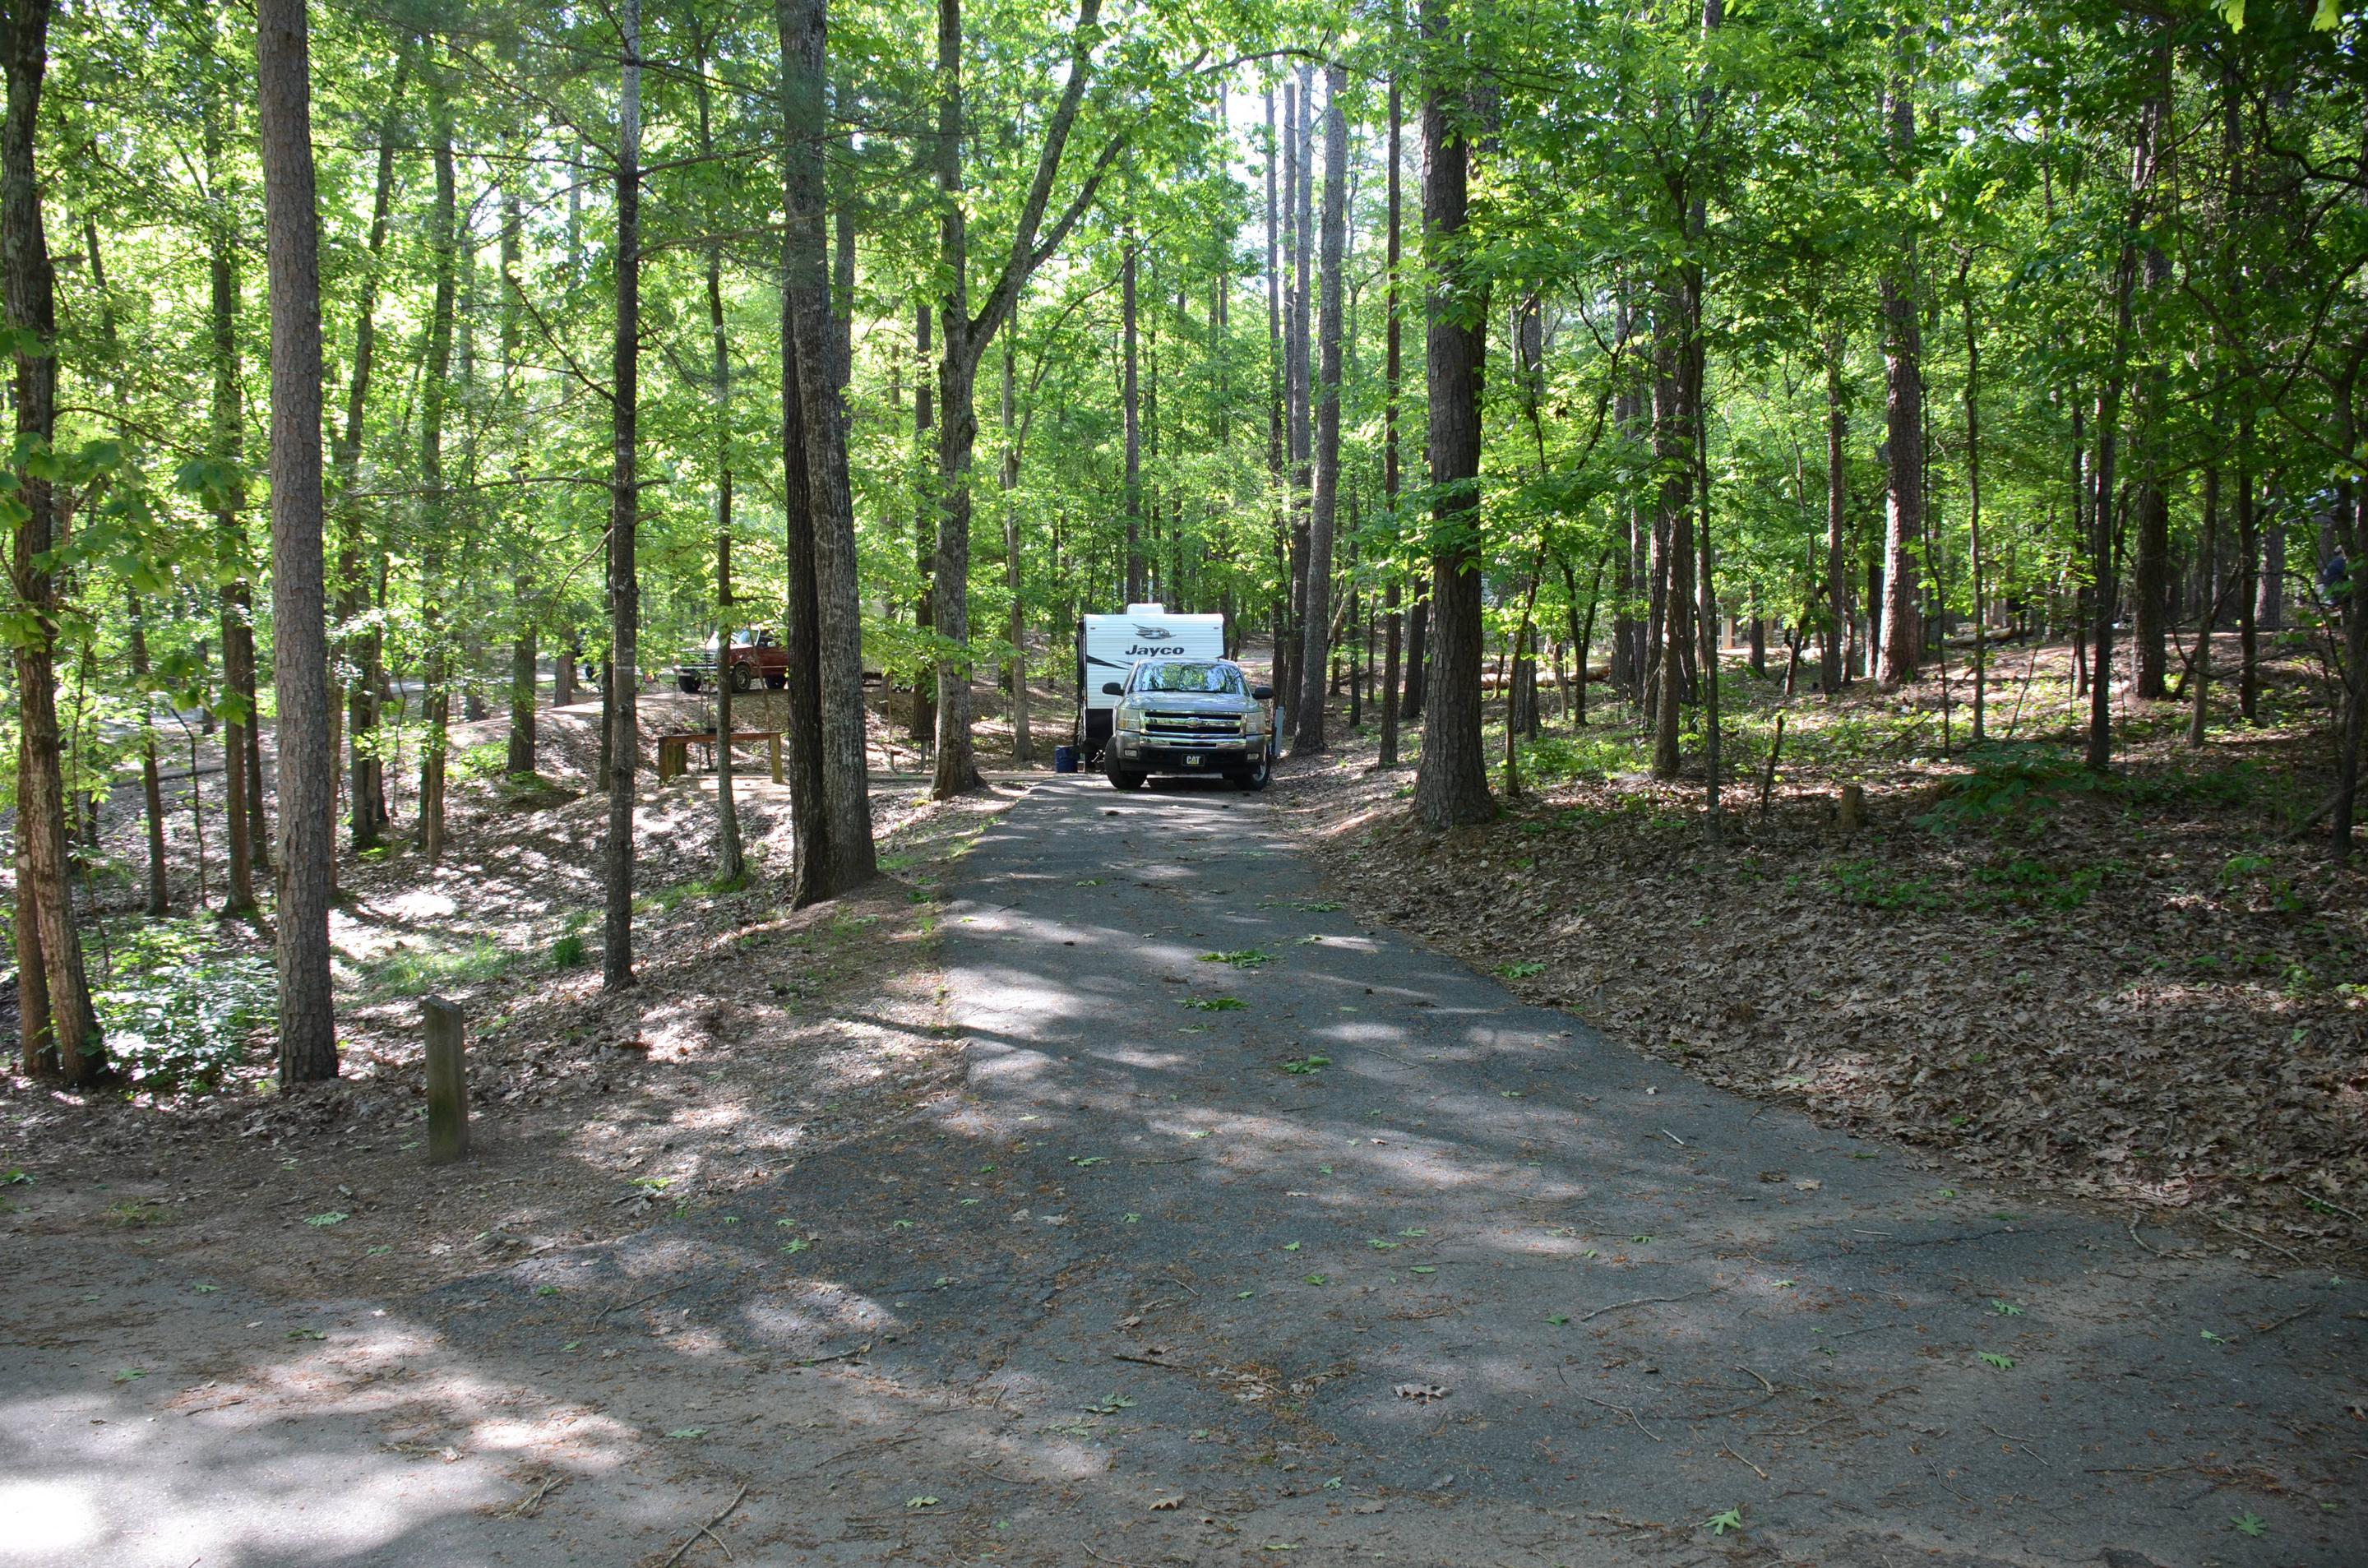 Driveway entrance angle, utilities-side clearance.McKinney Campground, campsite 9